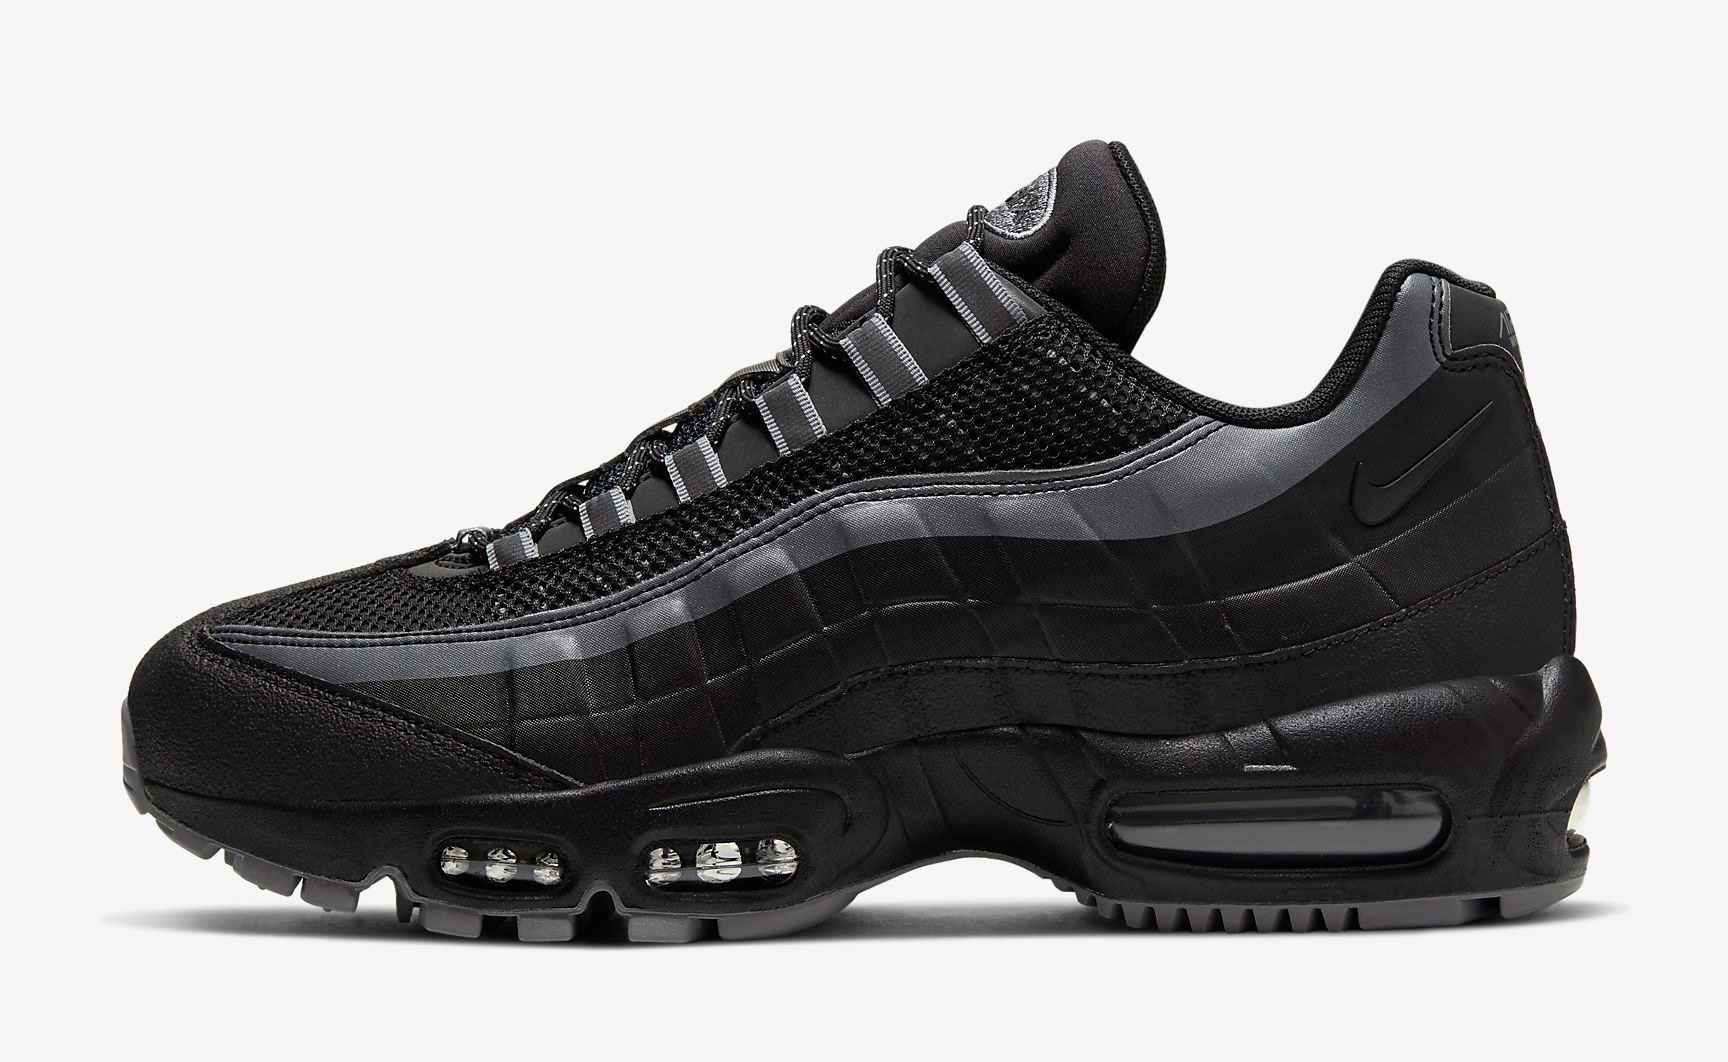 nike-air-max-95-utility-black-cool-grey-release-date